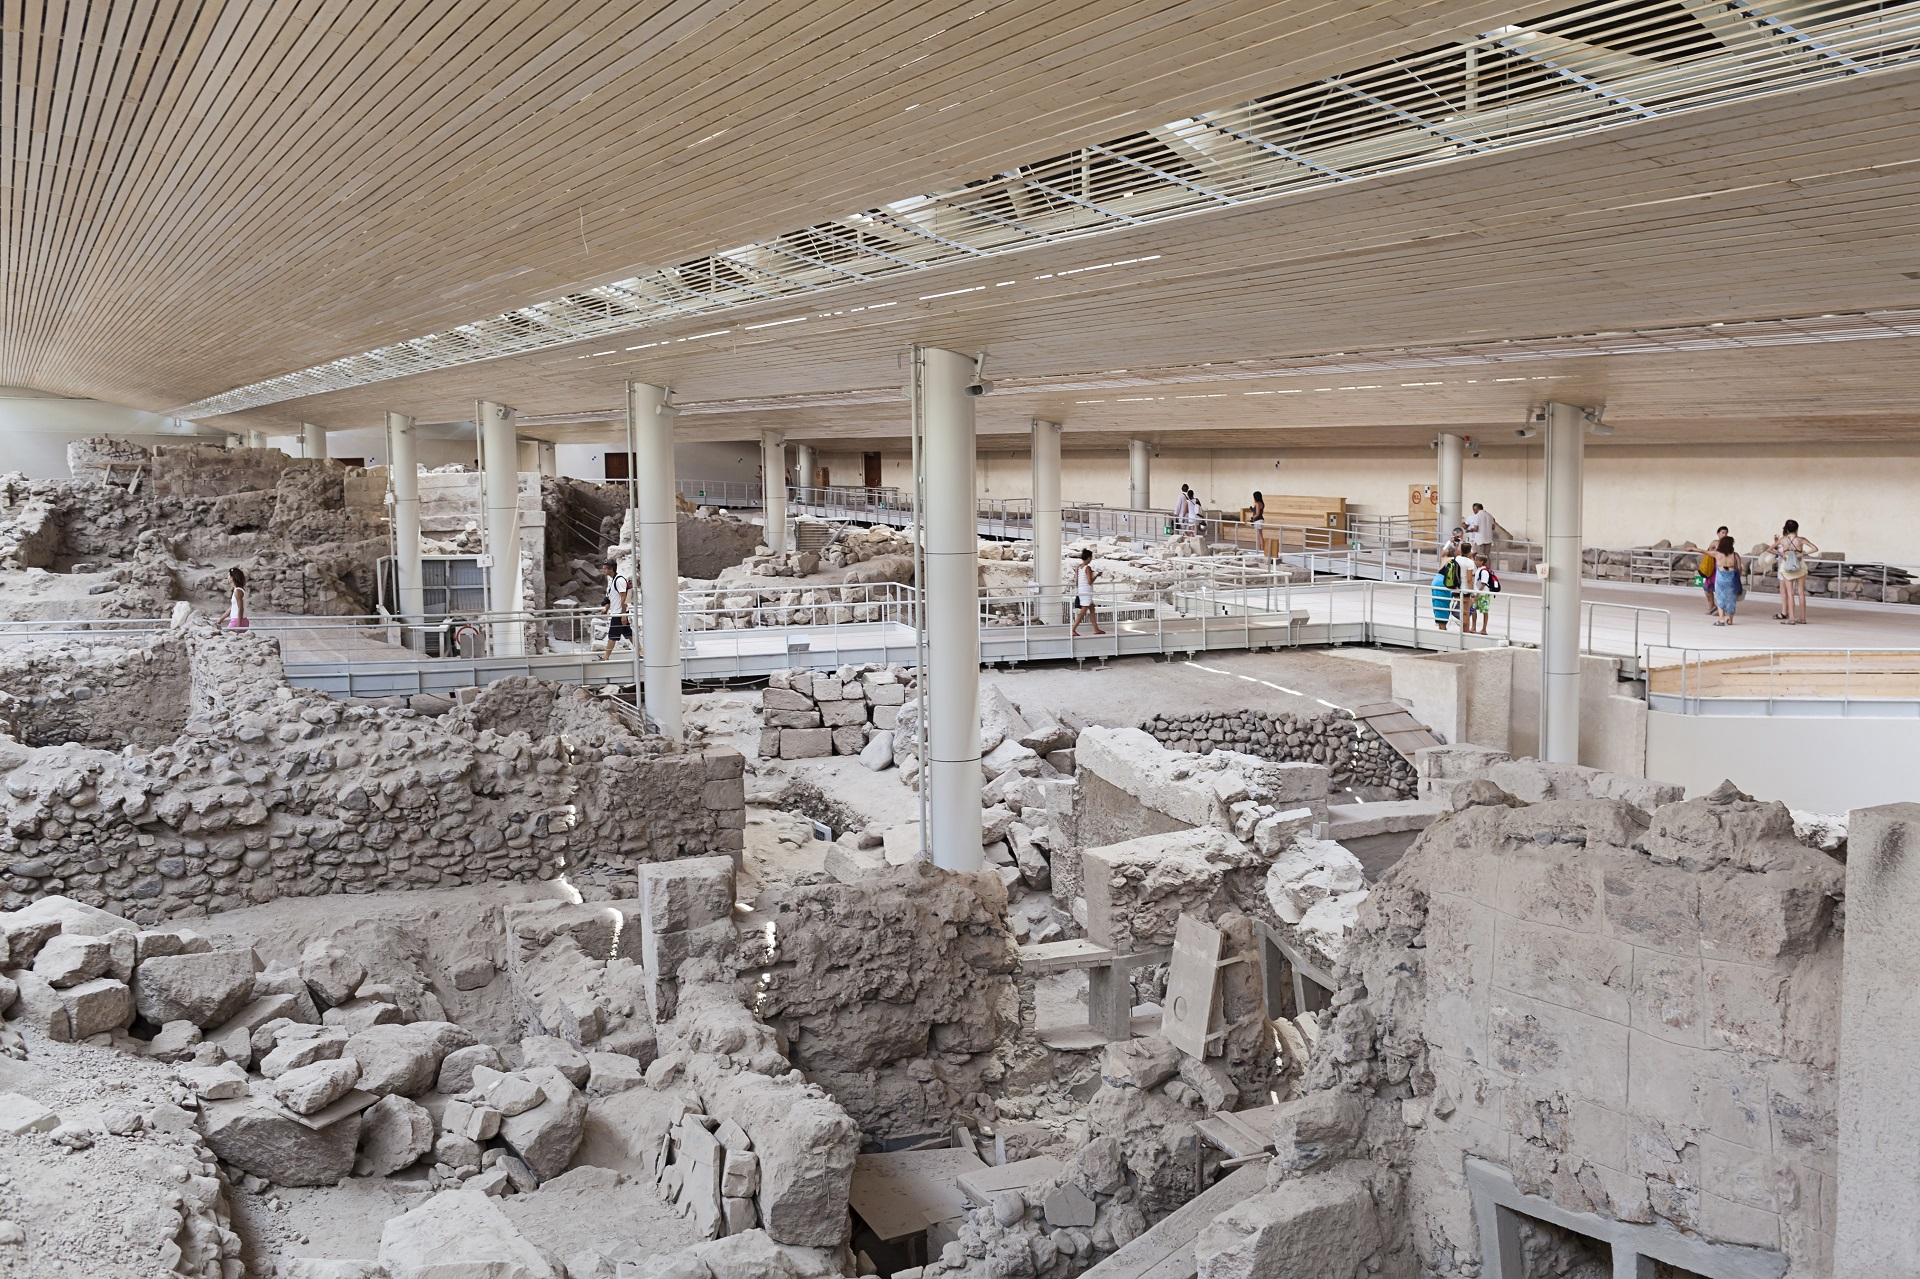 Akrotiri, excavation site of a Minoan Bronze Age settlement on the Greek island of Santorini